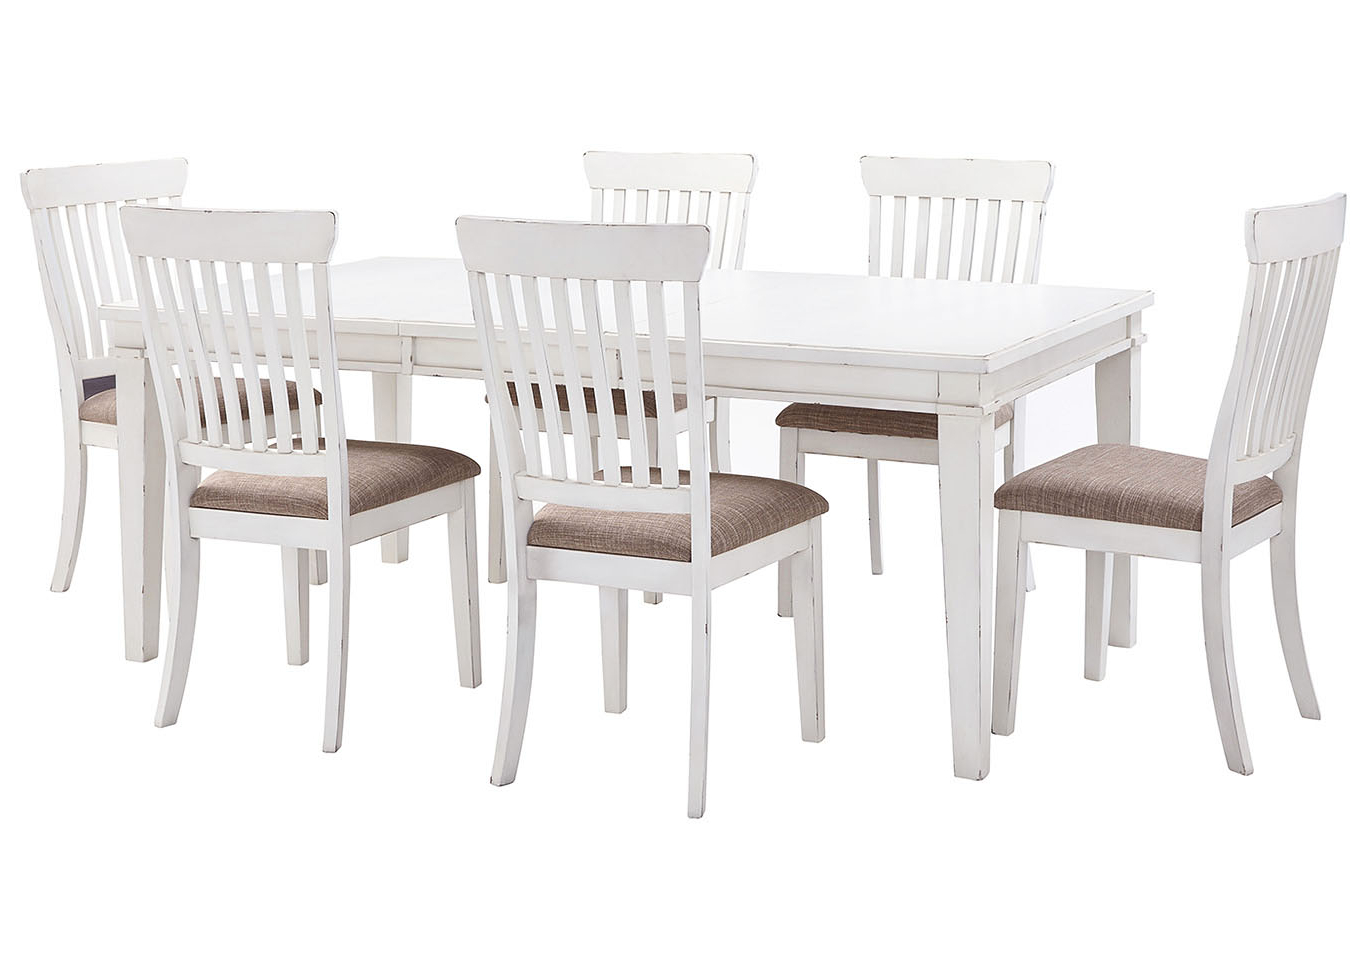 2018 Transitional 6 Seating Casual Dining Tables Intended For Curly's Furniture Danbeck White Dining Table Set W/dining (View 3 of 30)